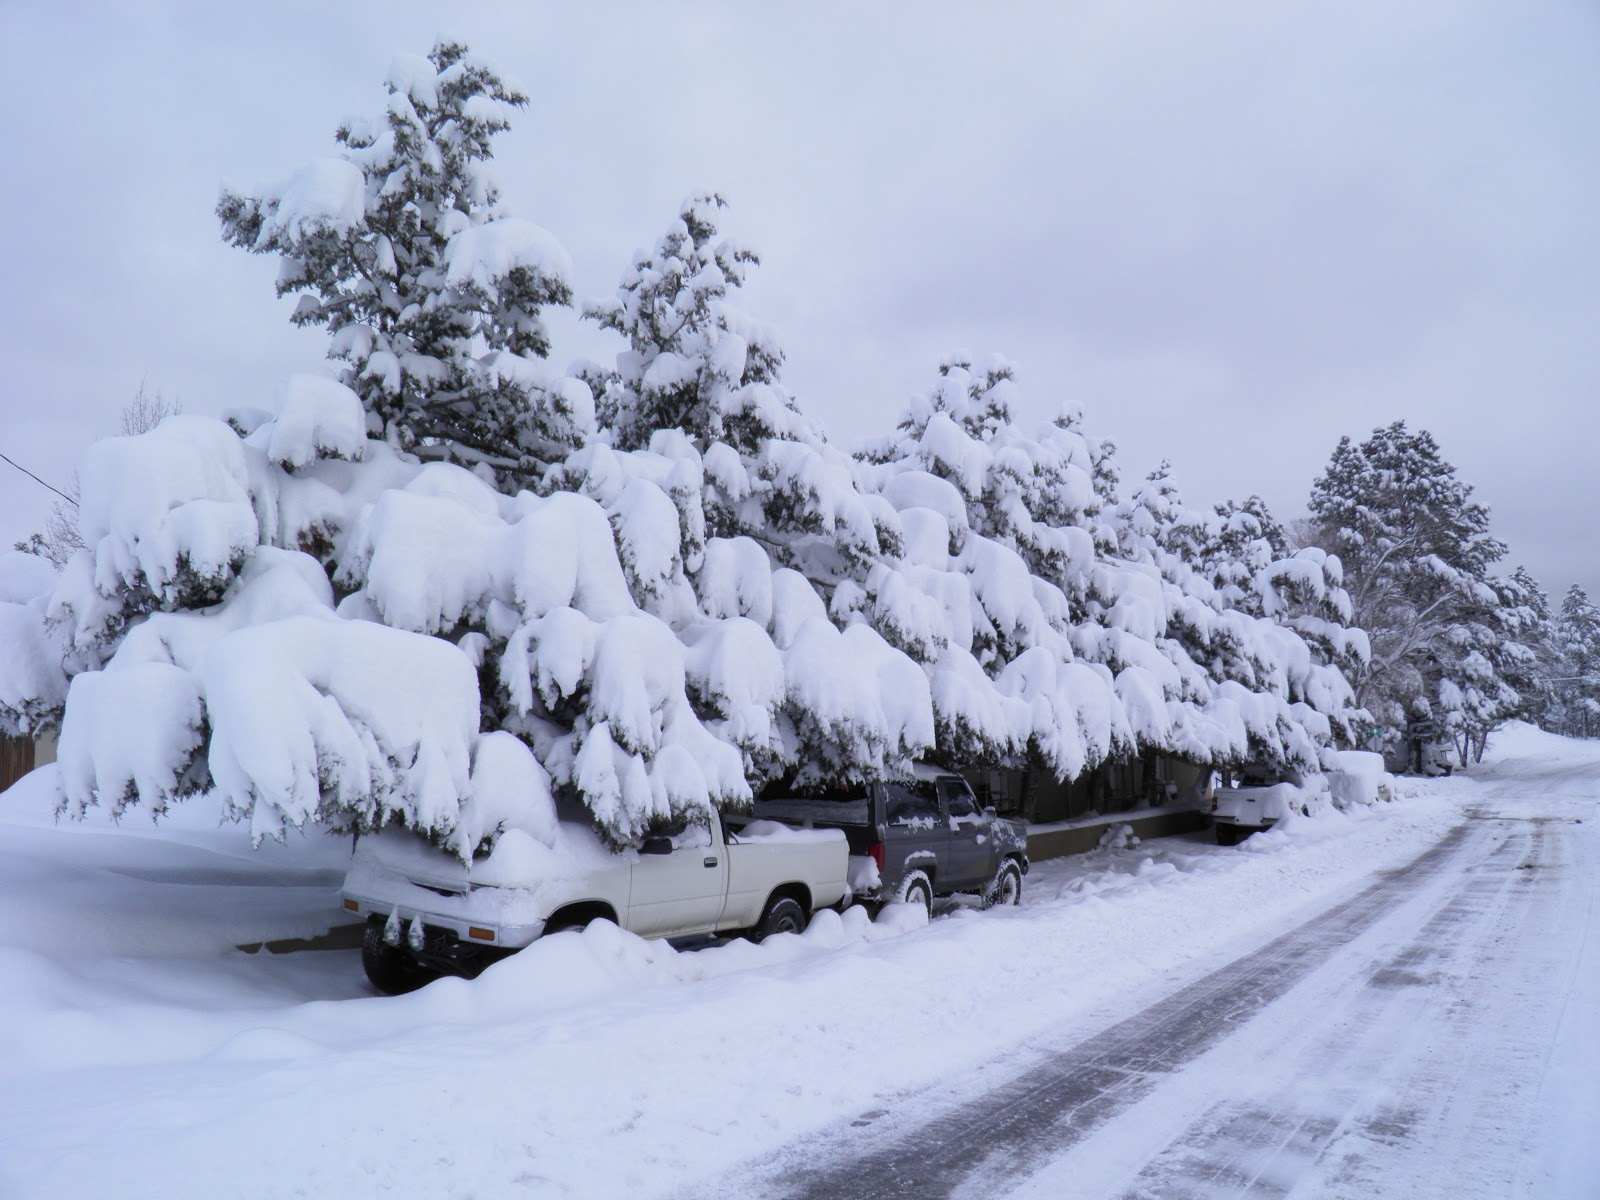 walking flagstaff: monday morning after snow storm